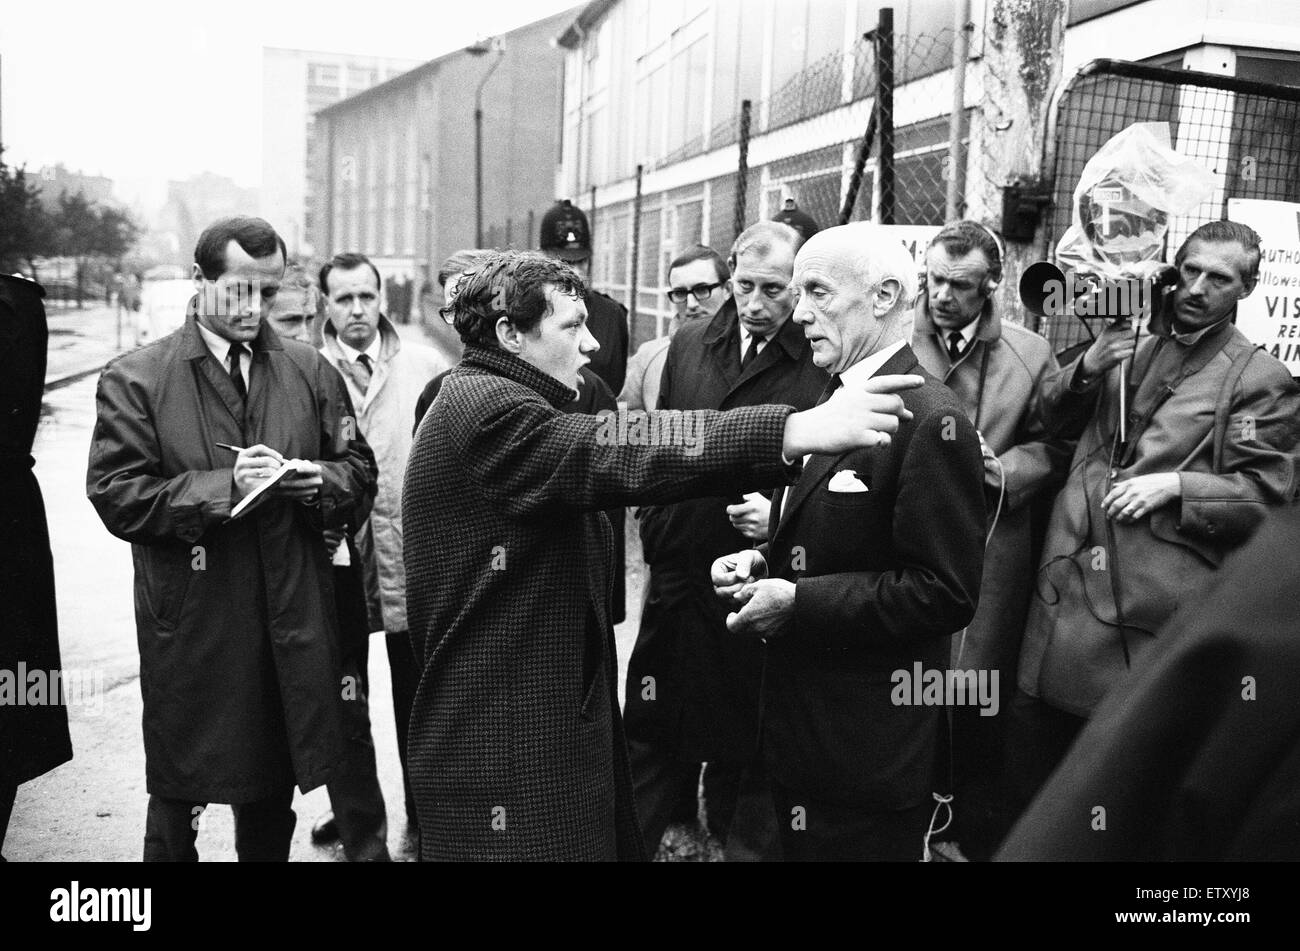 Between 1965-1967, there were a series of disputes on Myton Ltd's Barbican redevelopment site in the City of London. Stock Photo